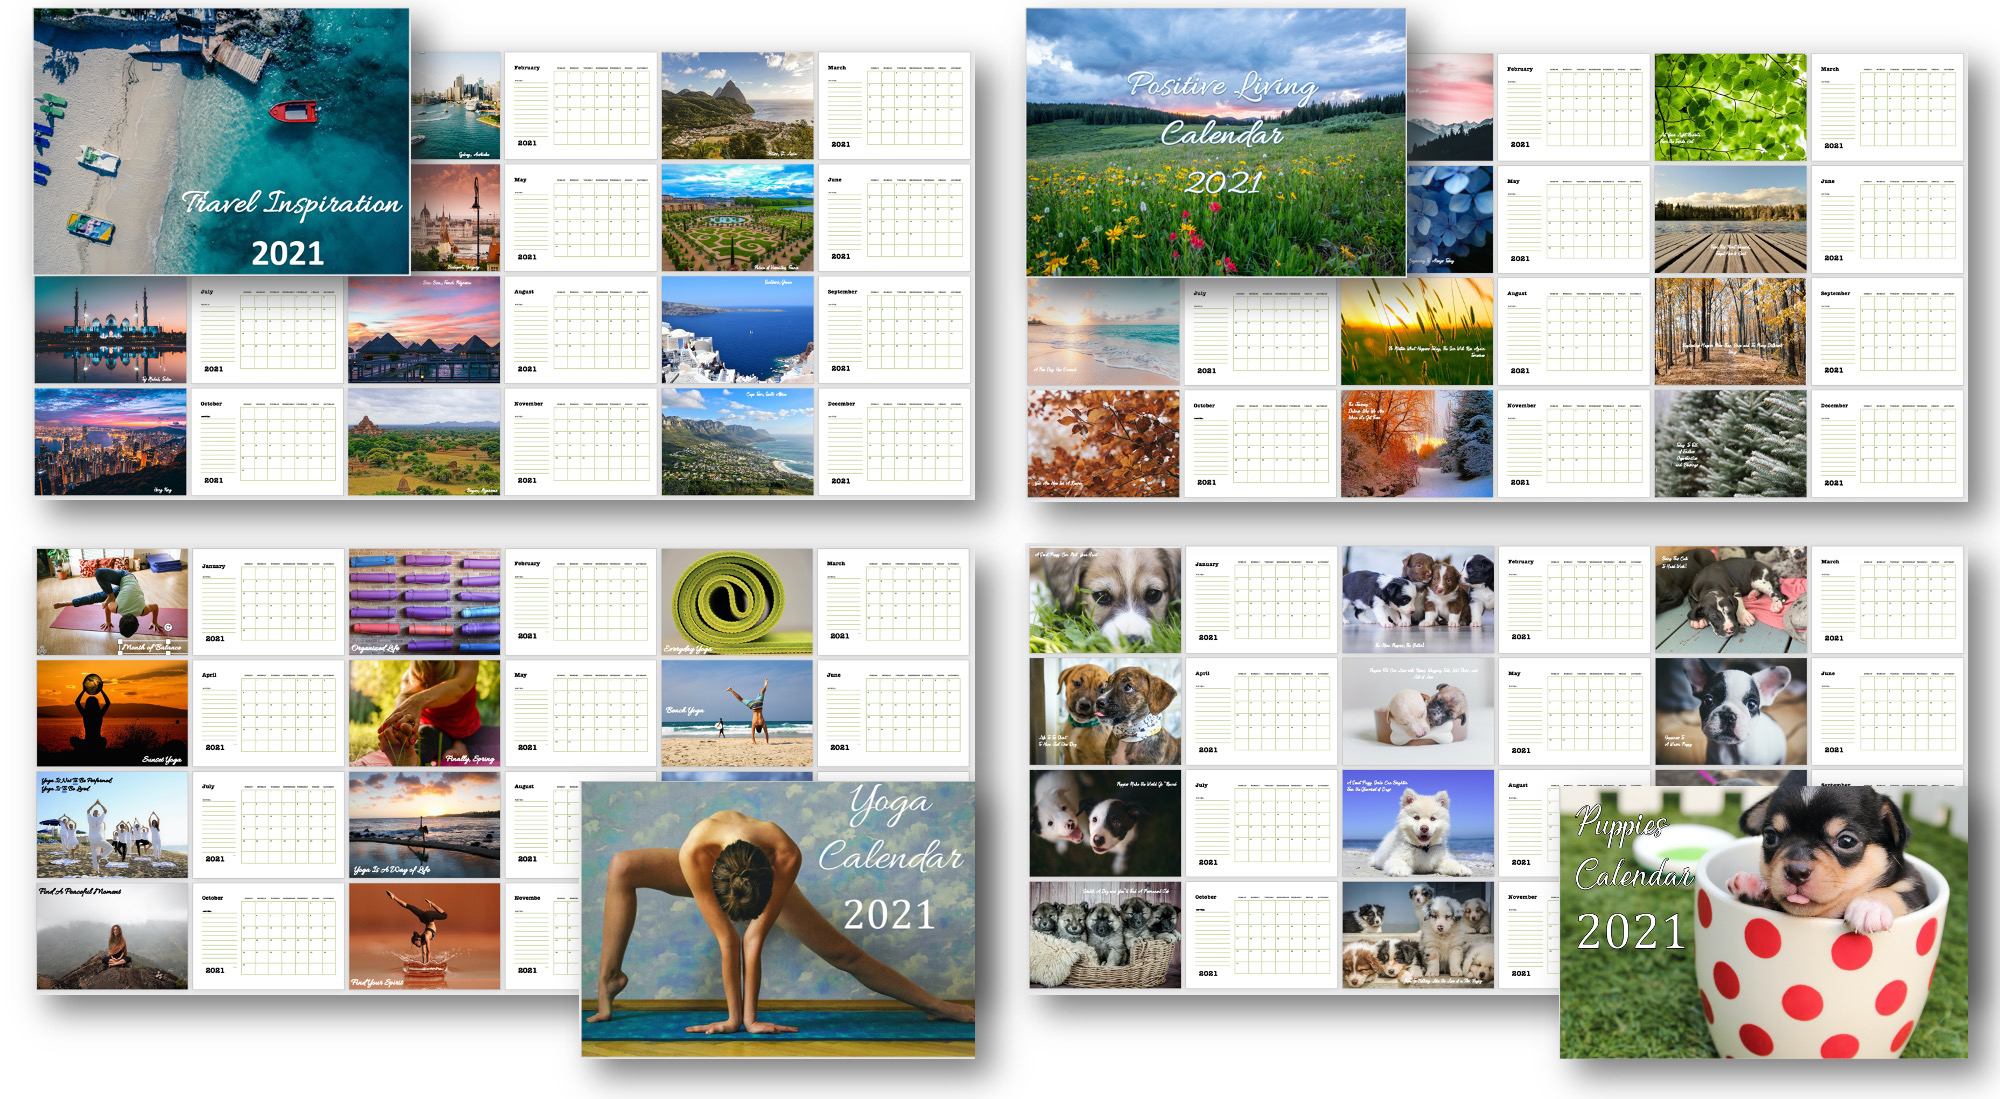 Peek Inside the Calendars with PLR Rights